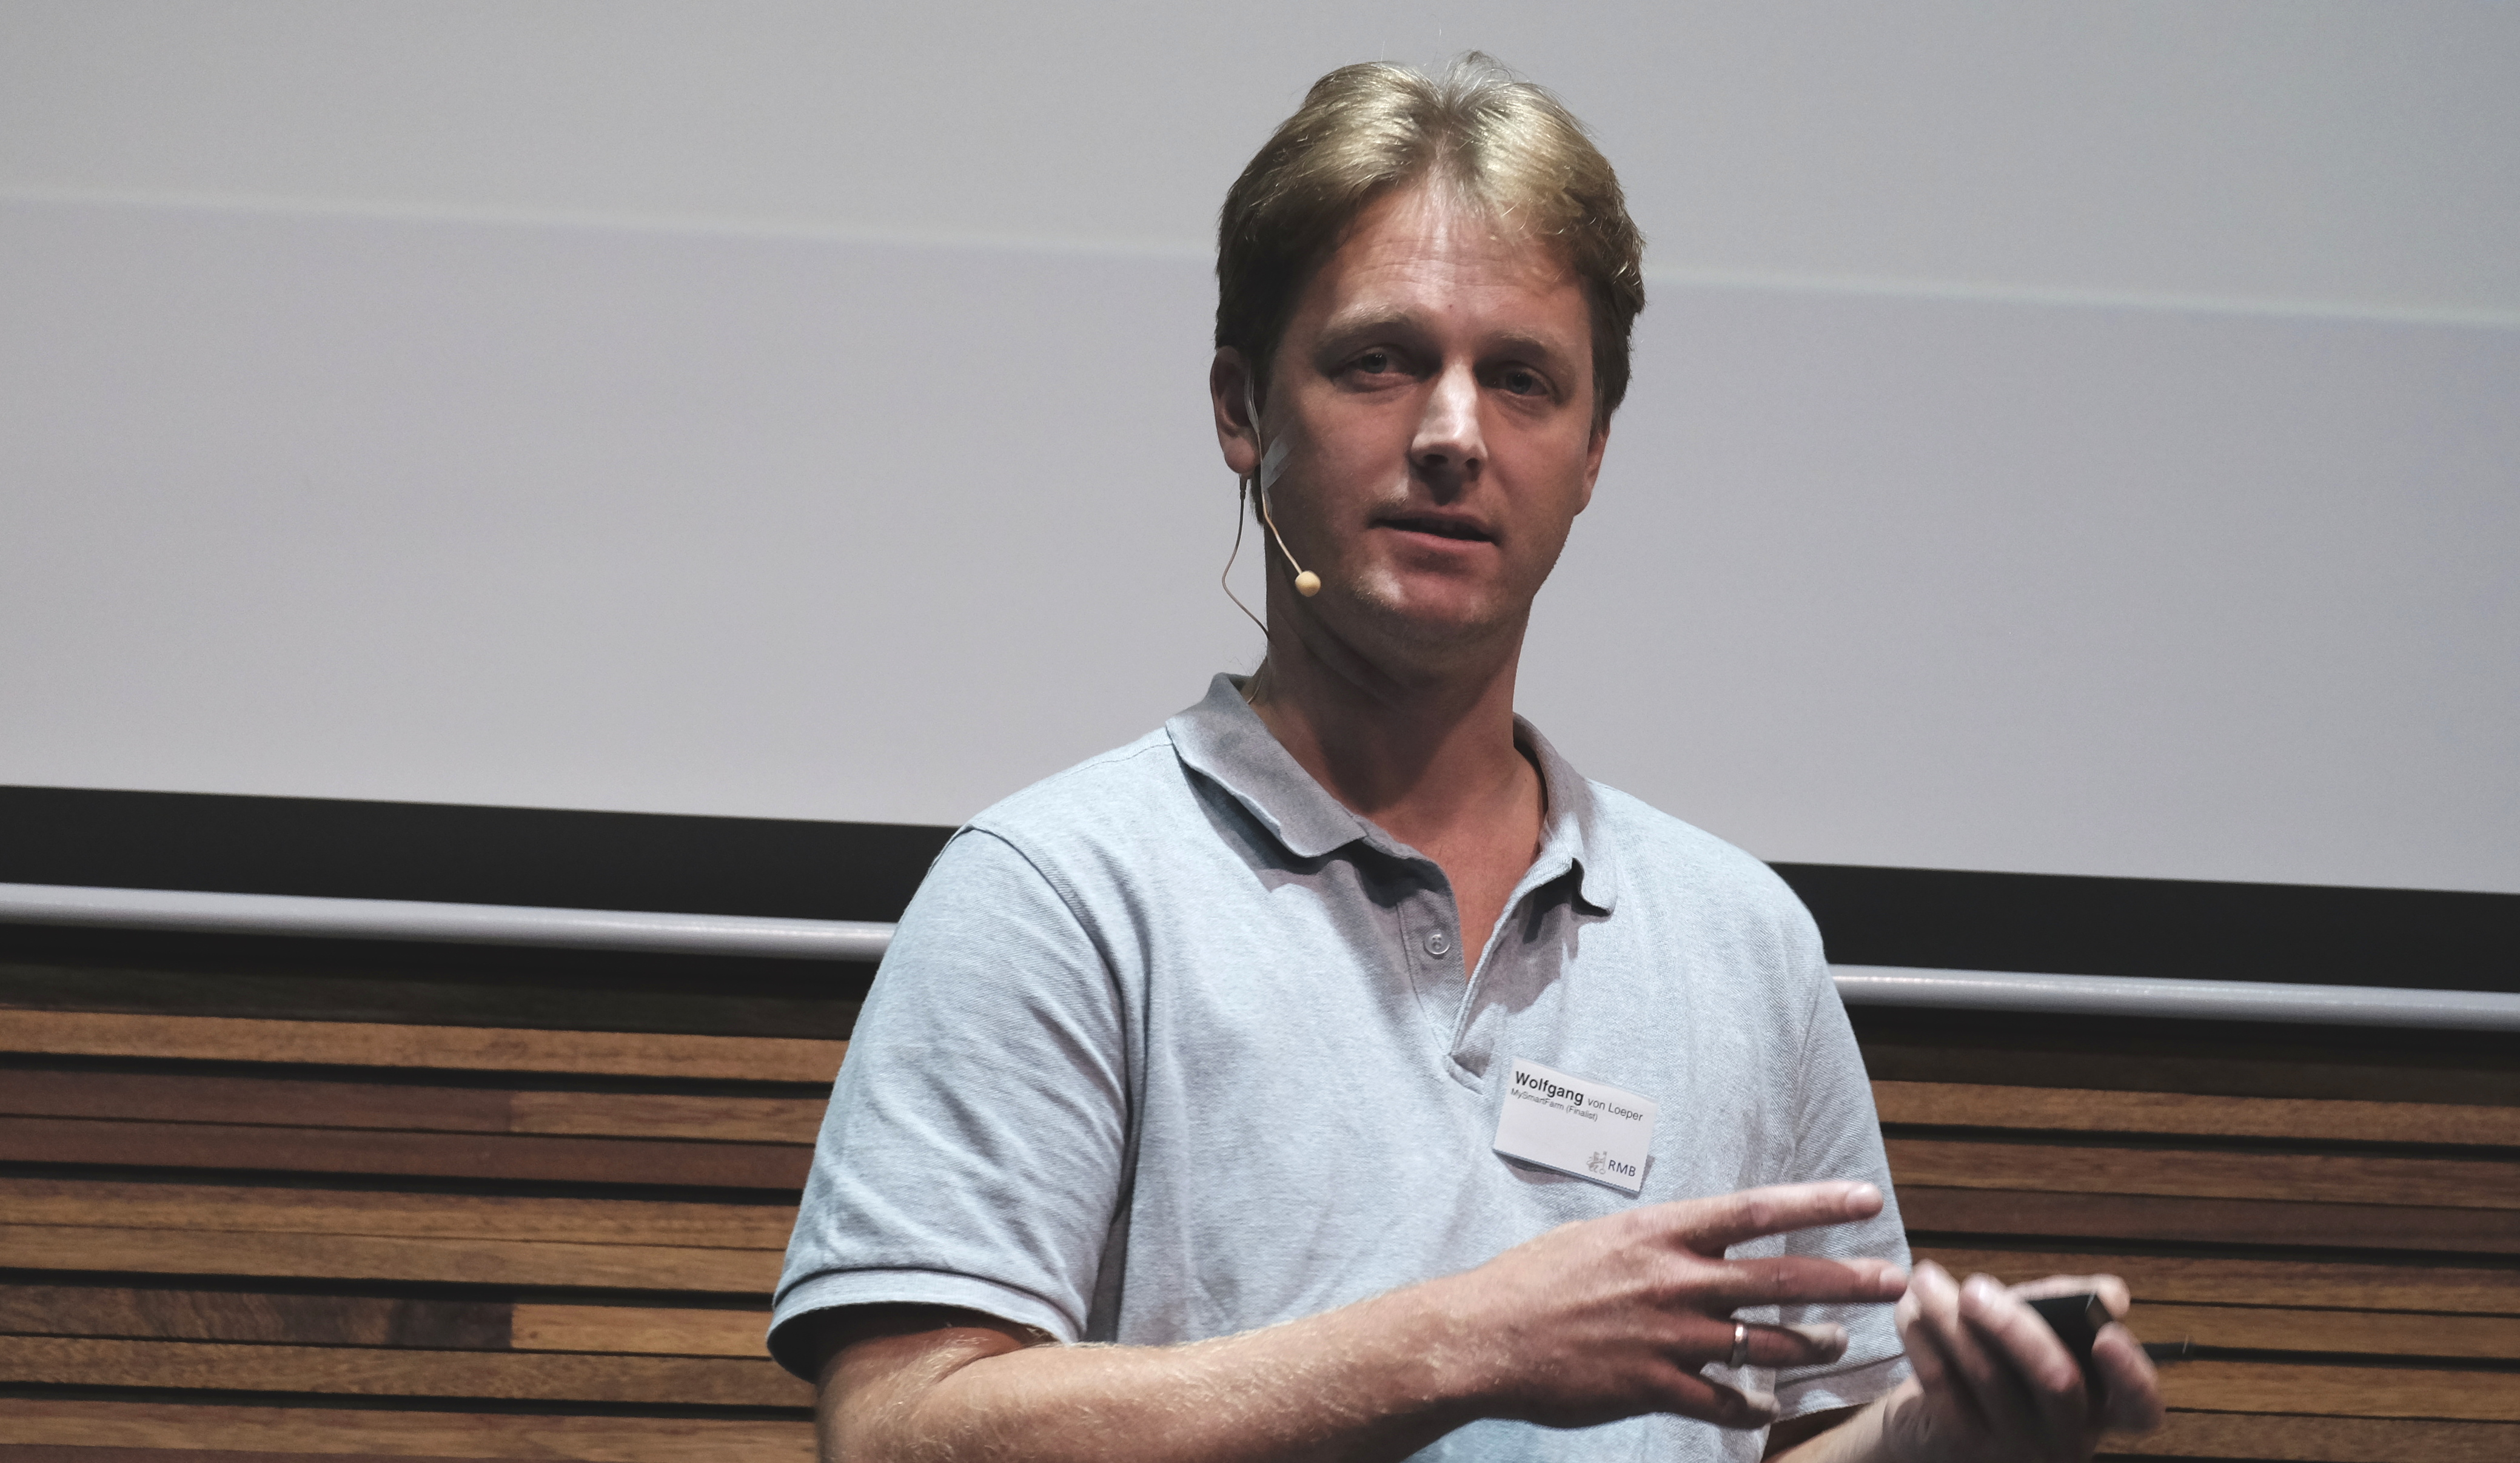 Wolfgang von Loeper, collides big data and small farmers for fun and profit.